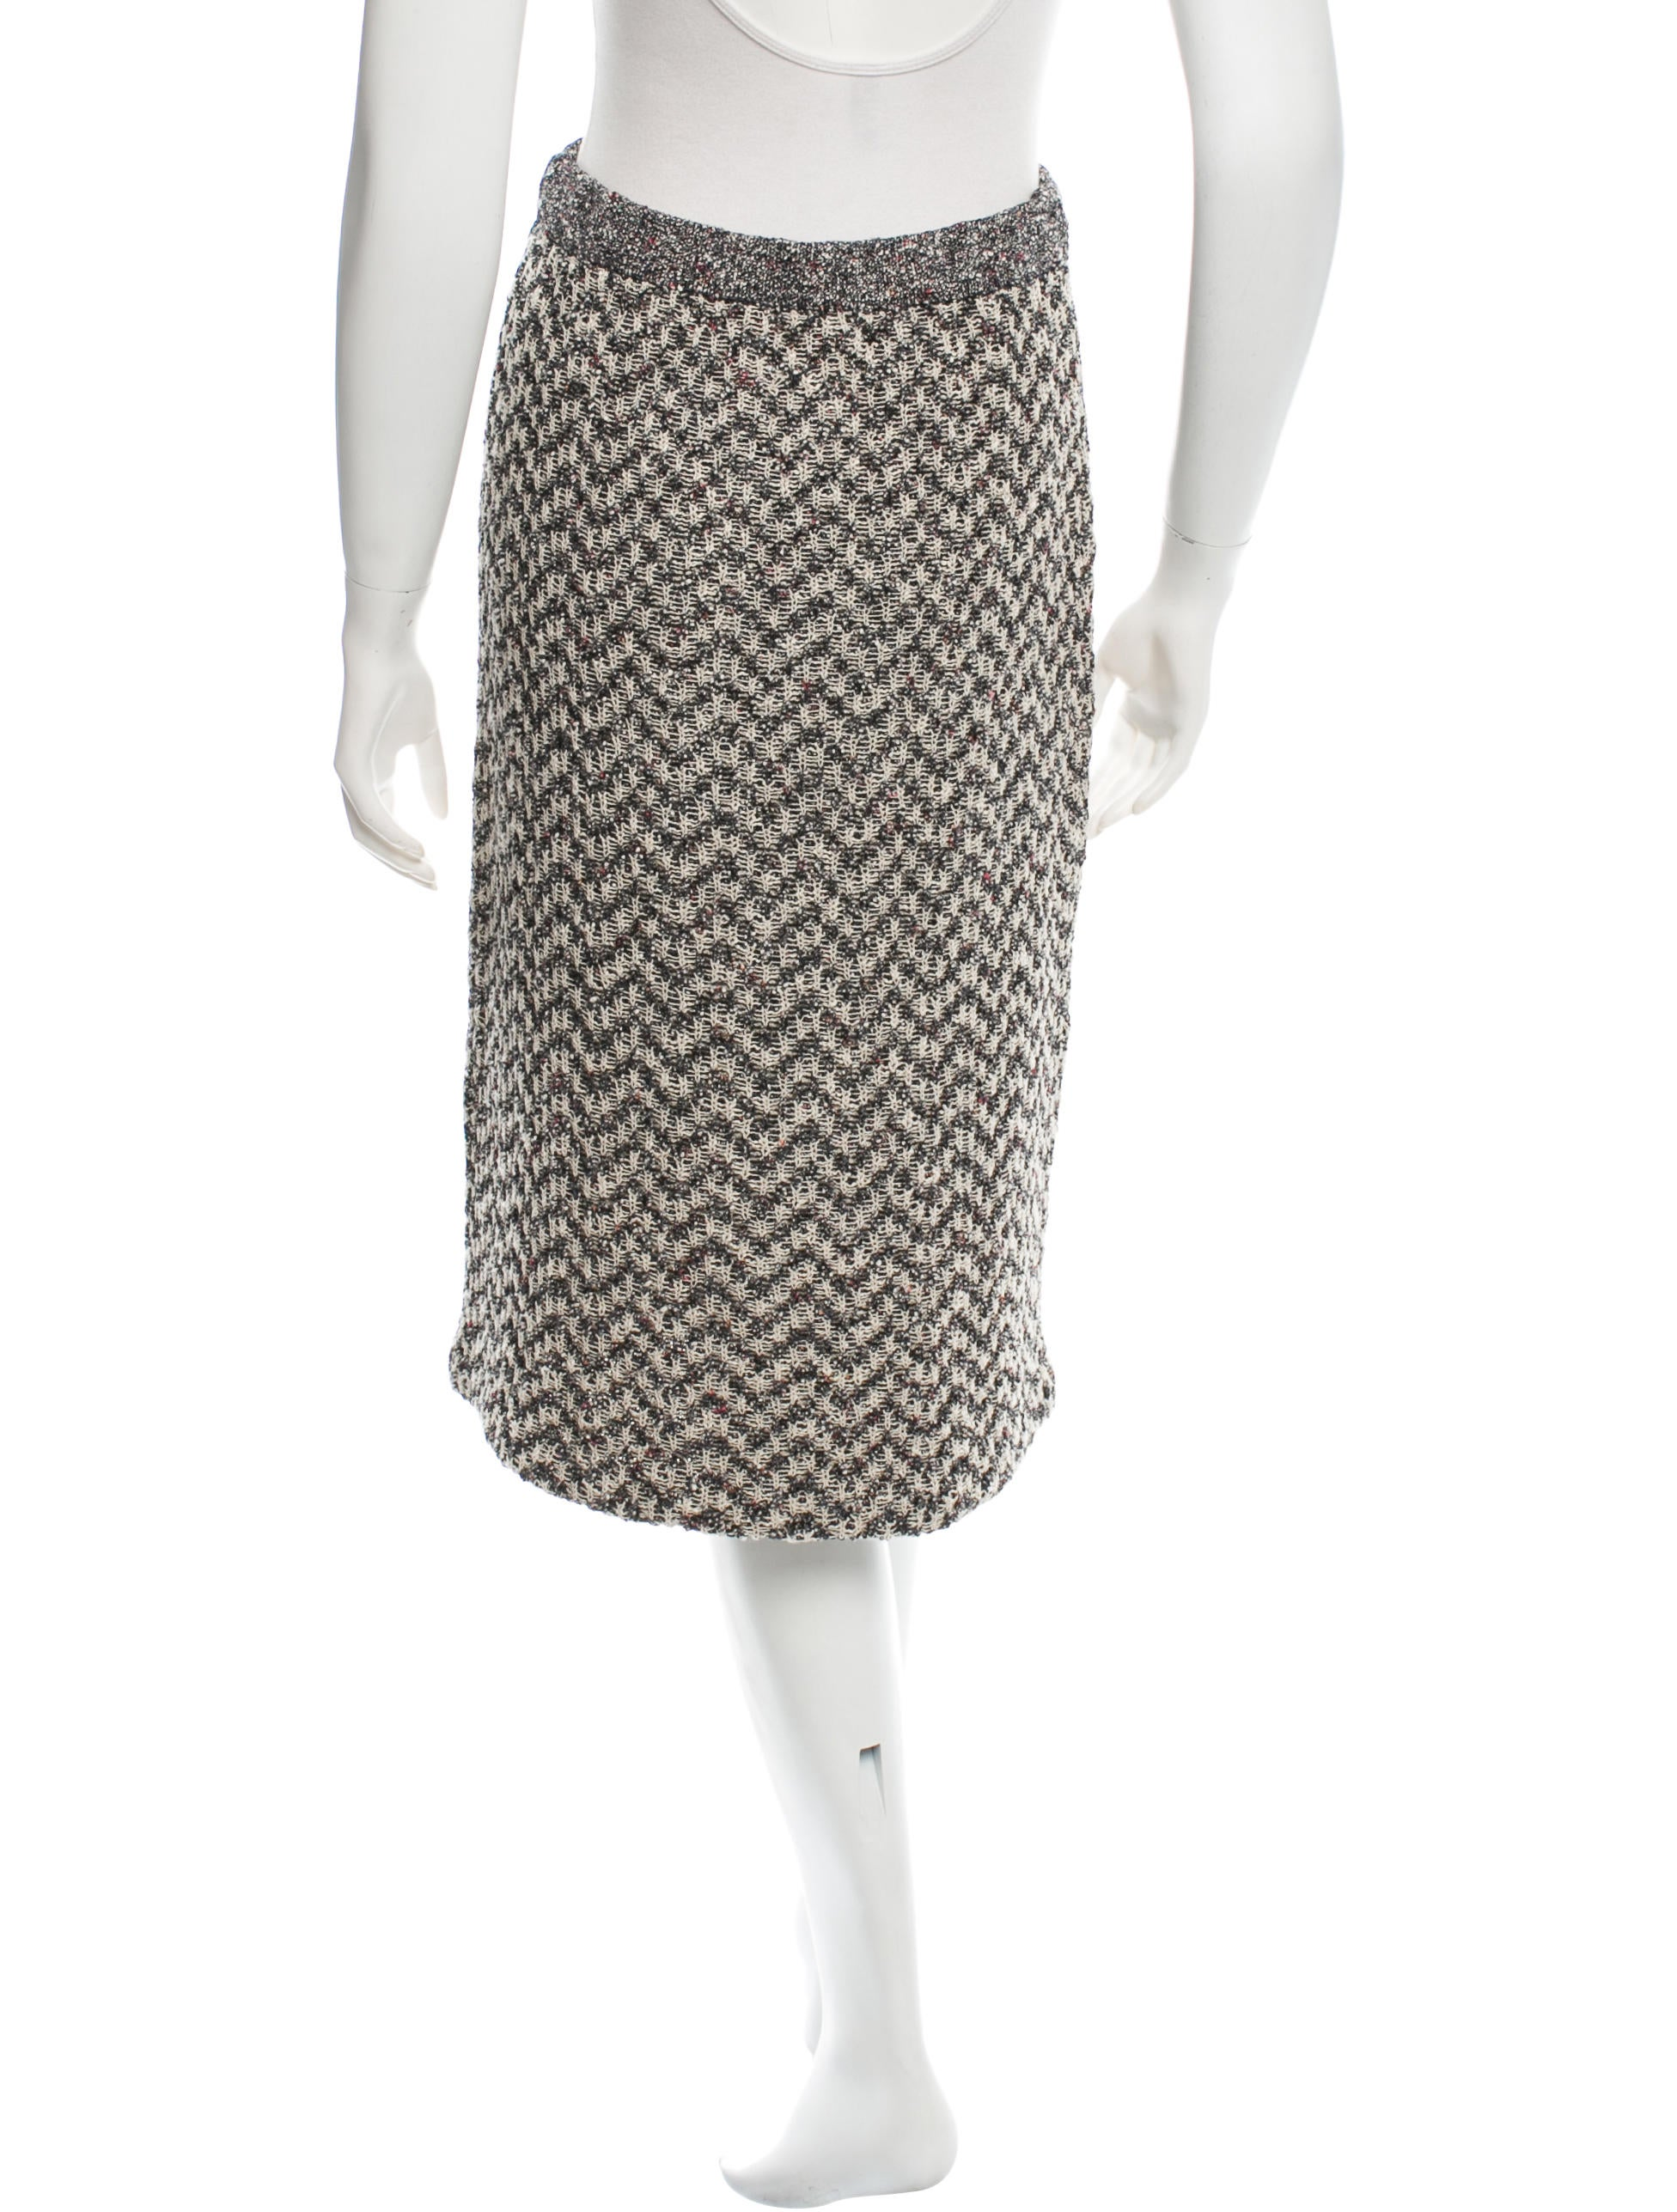 burch knit knee length skirt clothing wto59903